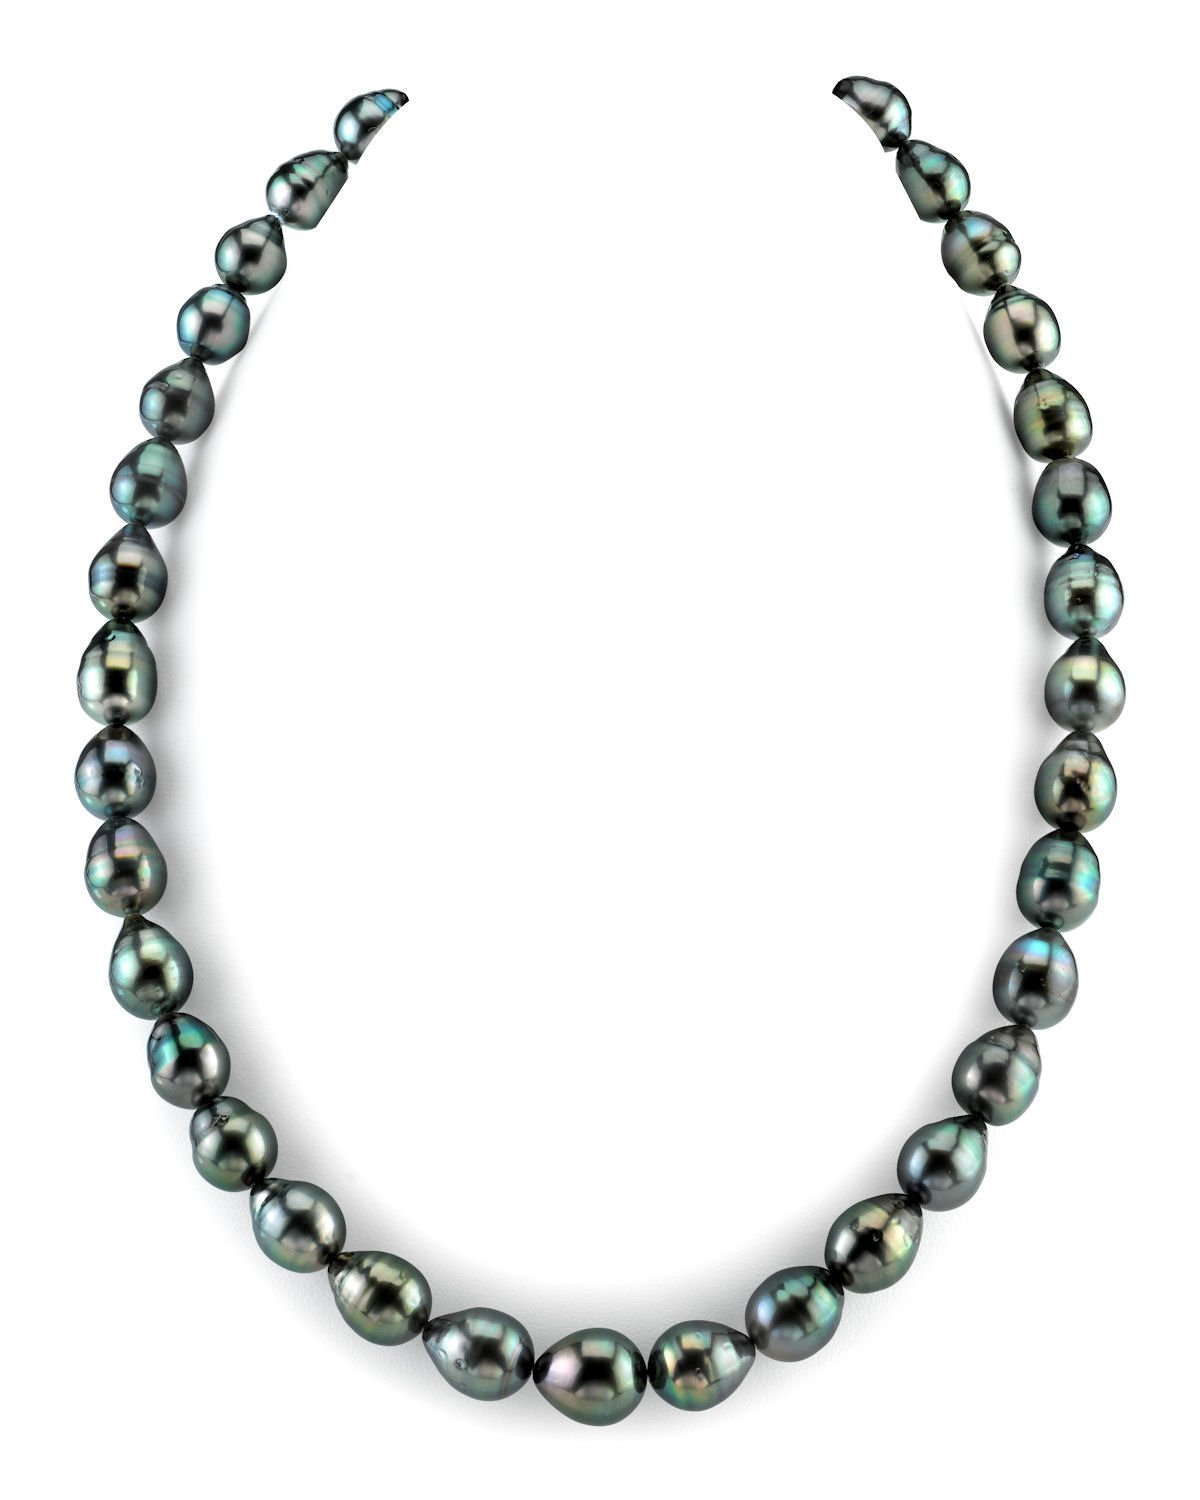 THE PEARL SOURCE 14K Gold 8-10mm Baroque Genuine Black Tahitian South Sea Cultured Pearl Necklace in 18'' Princess Length for Women